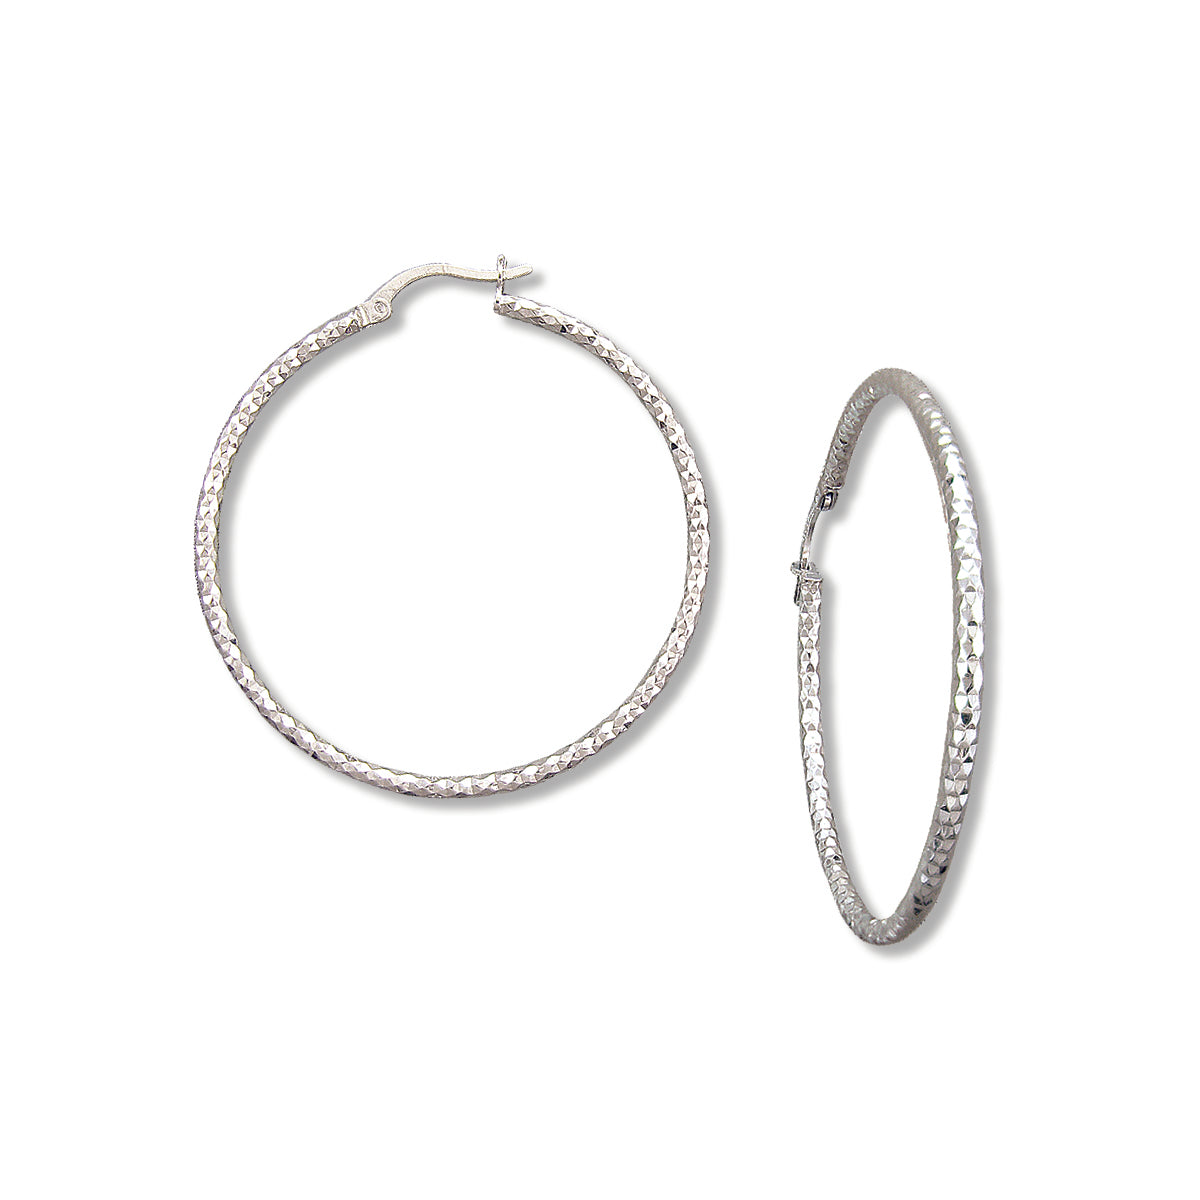 Textured Hoop Earrings, 1.75 Inches, Sterling Silver